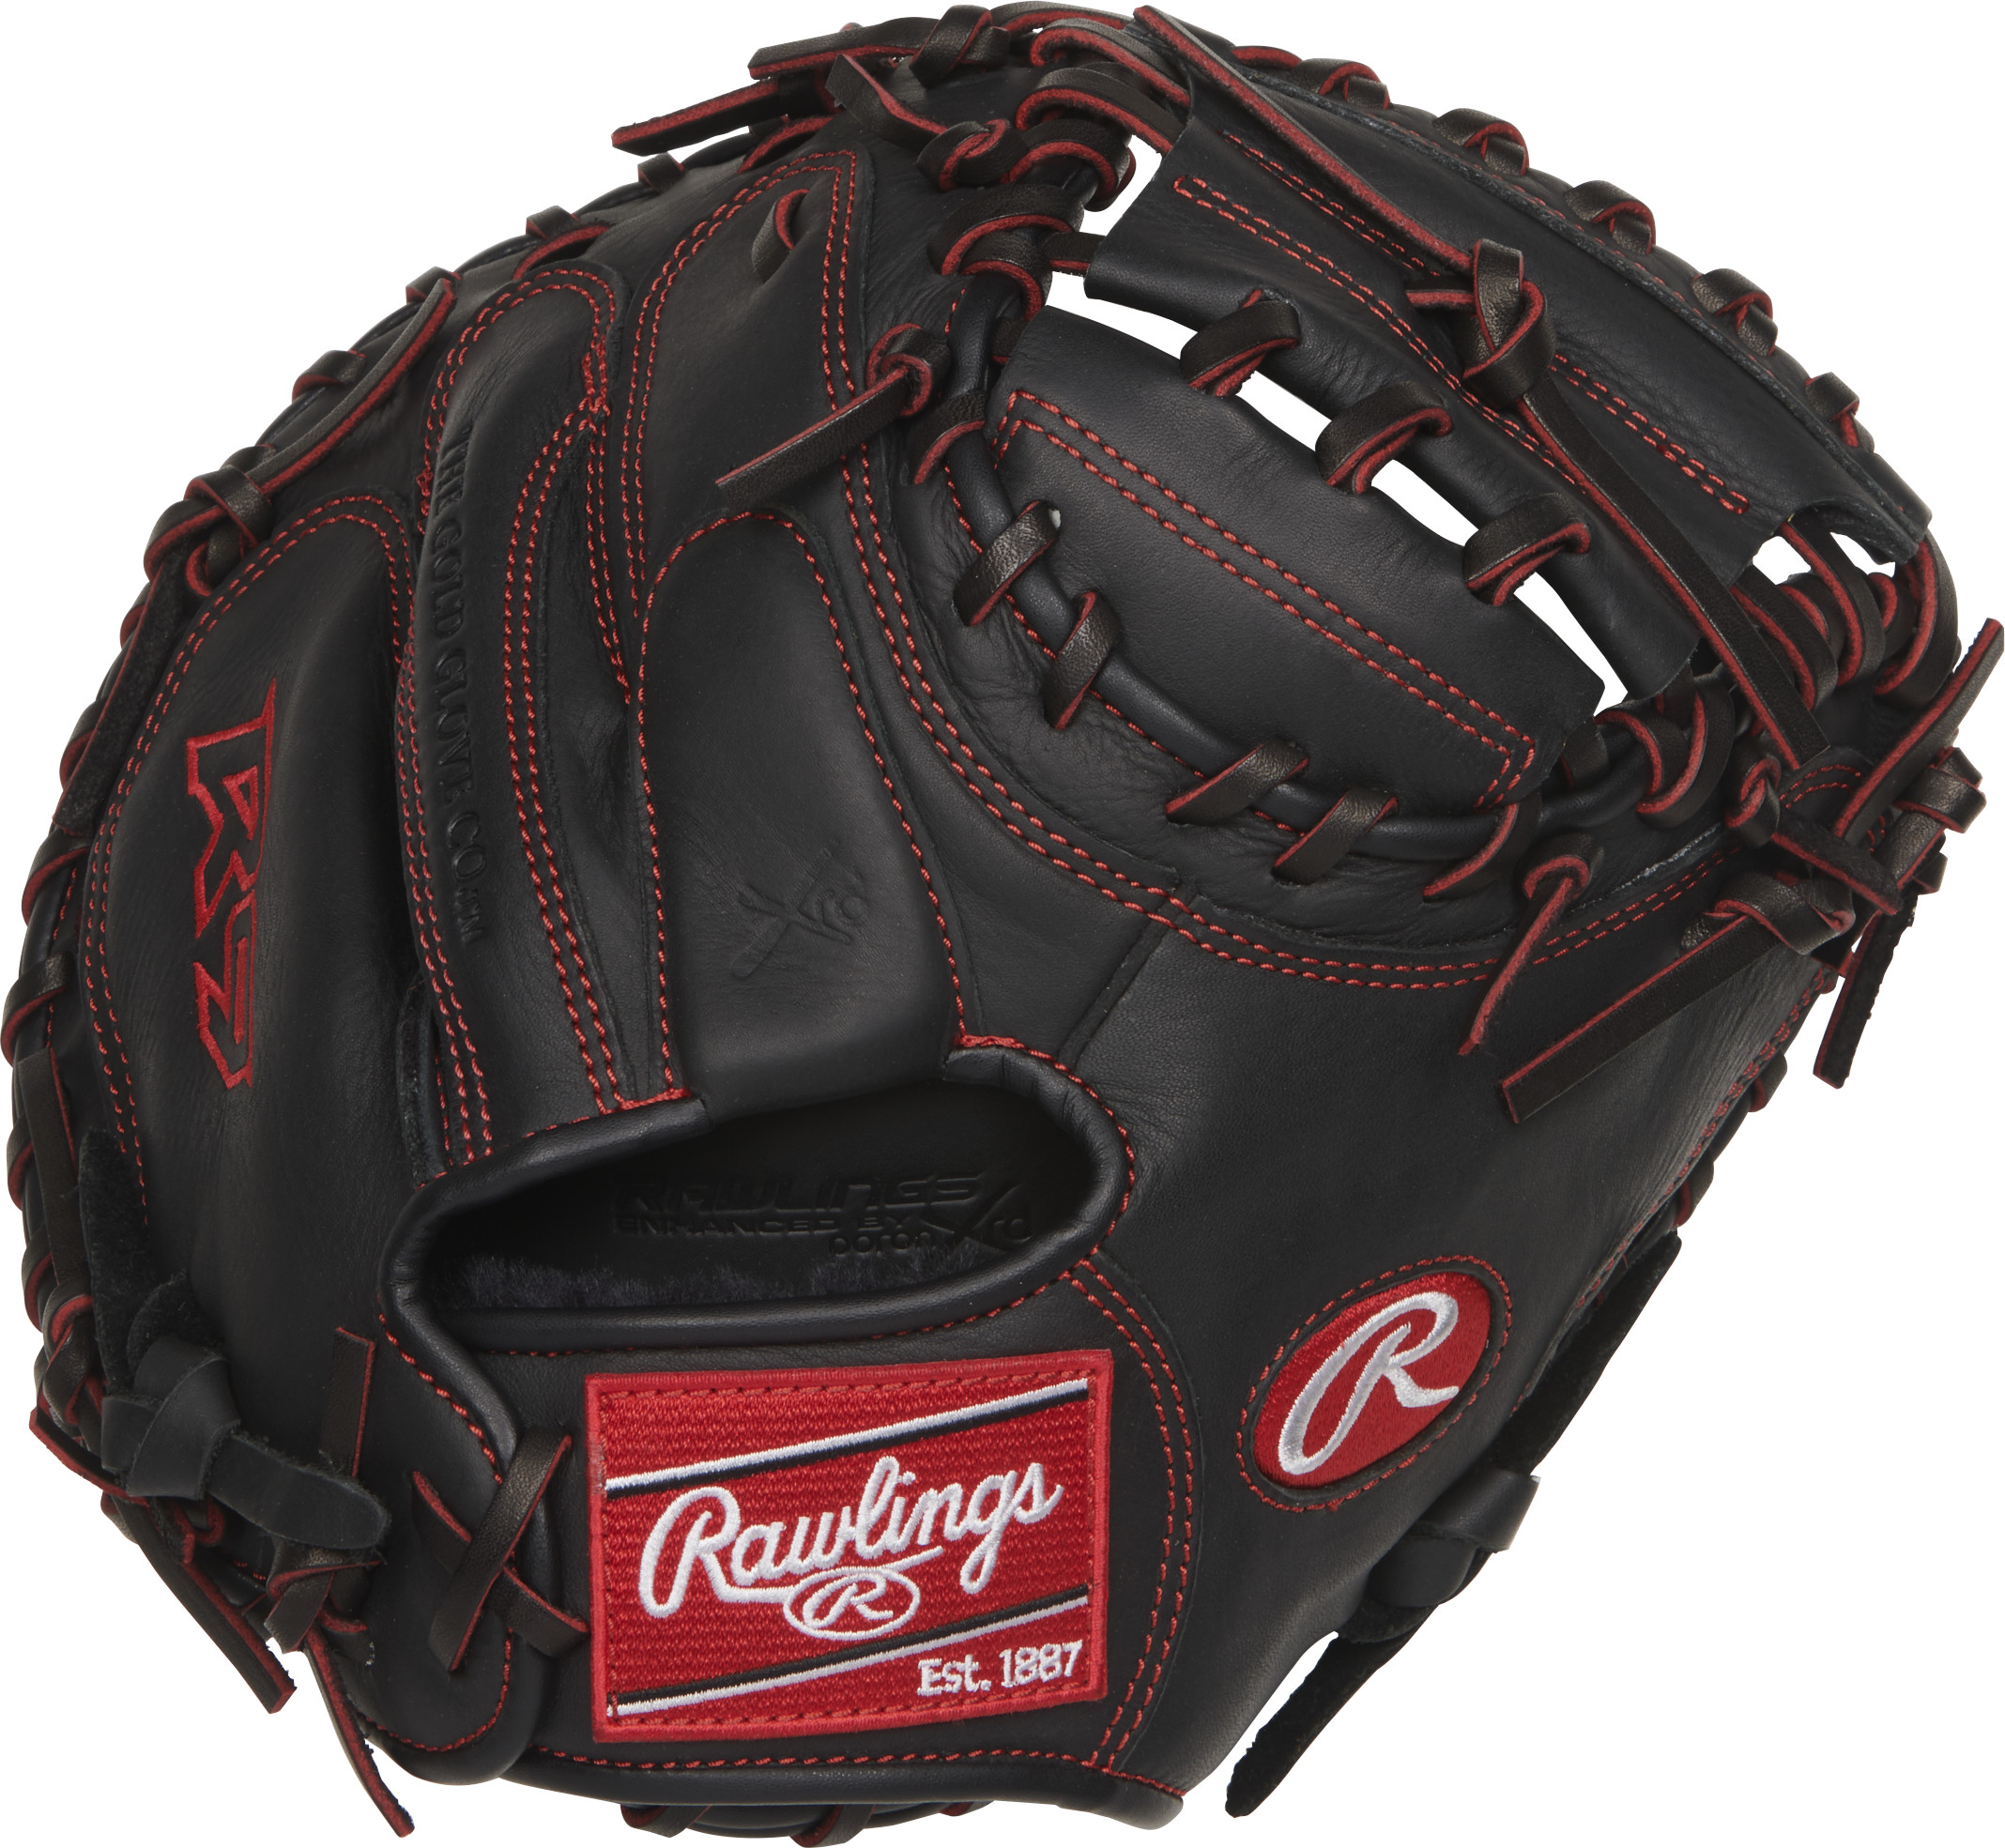 http://www.bestbatdeals.com/images/gloves/rawlings/R9YPTCM32B-2.jpg